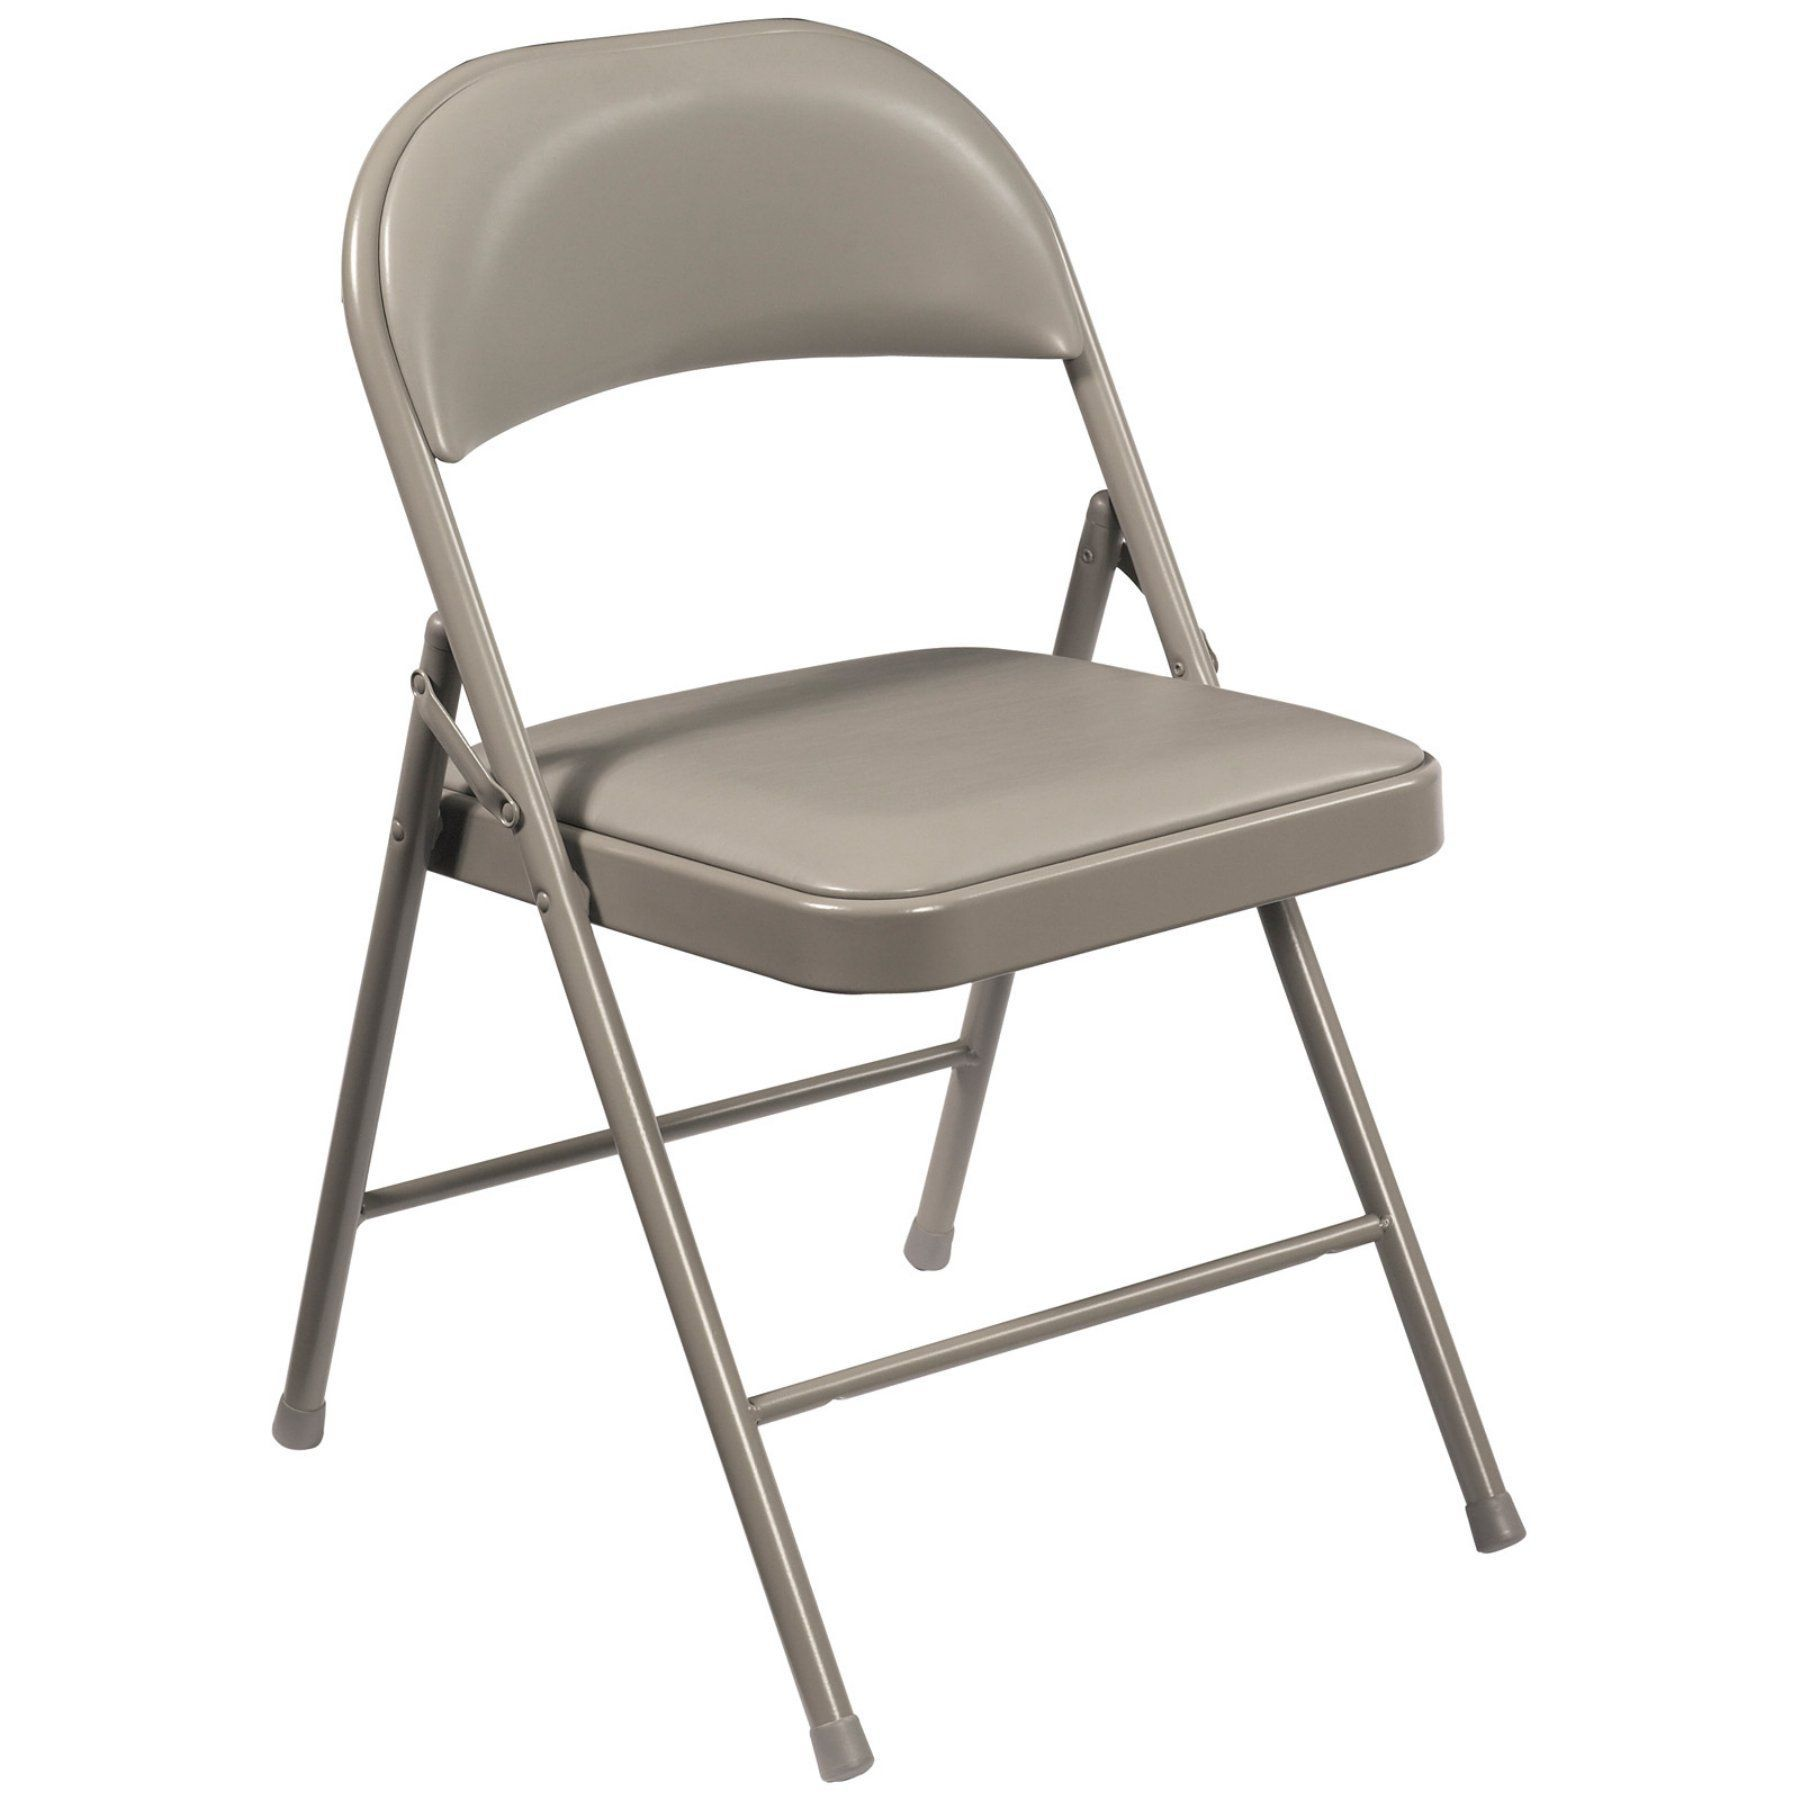 National Public Seating Commercialine Vinyl Padded Folding Chairs